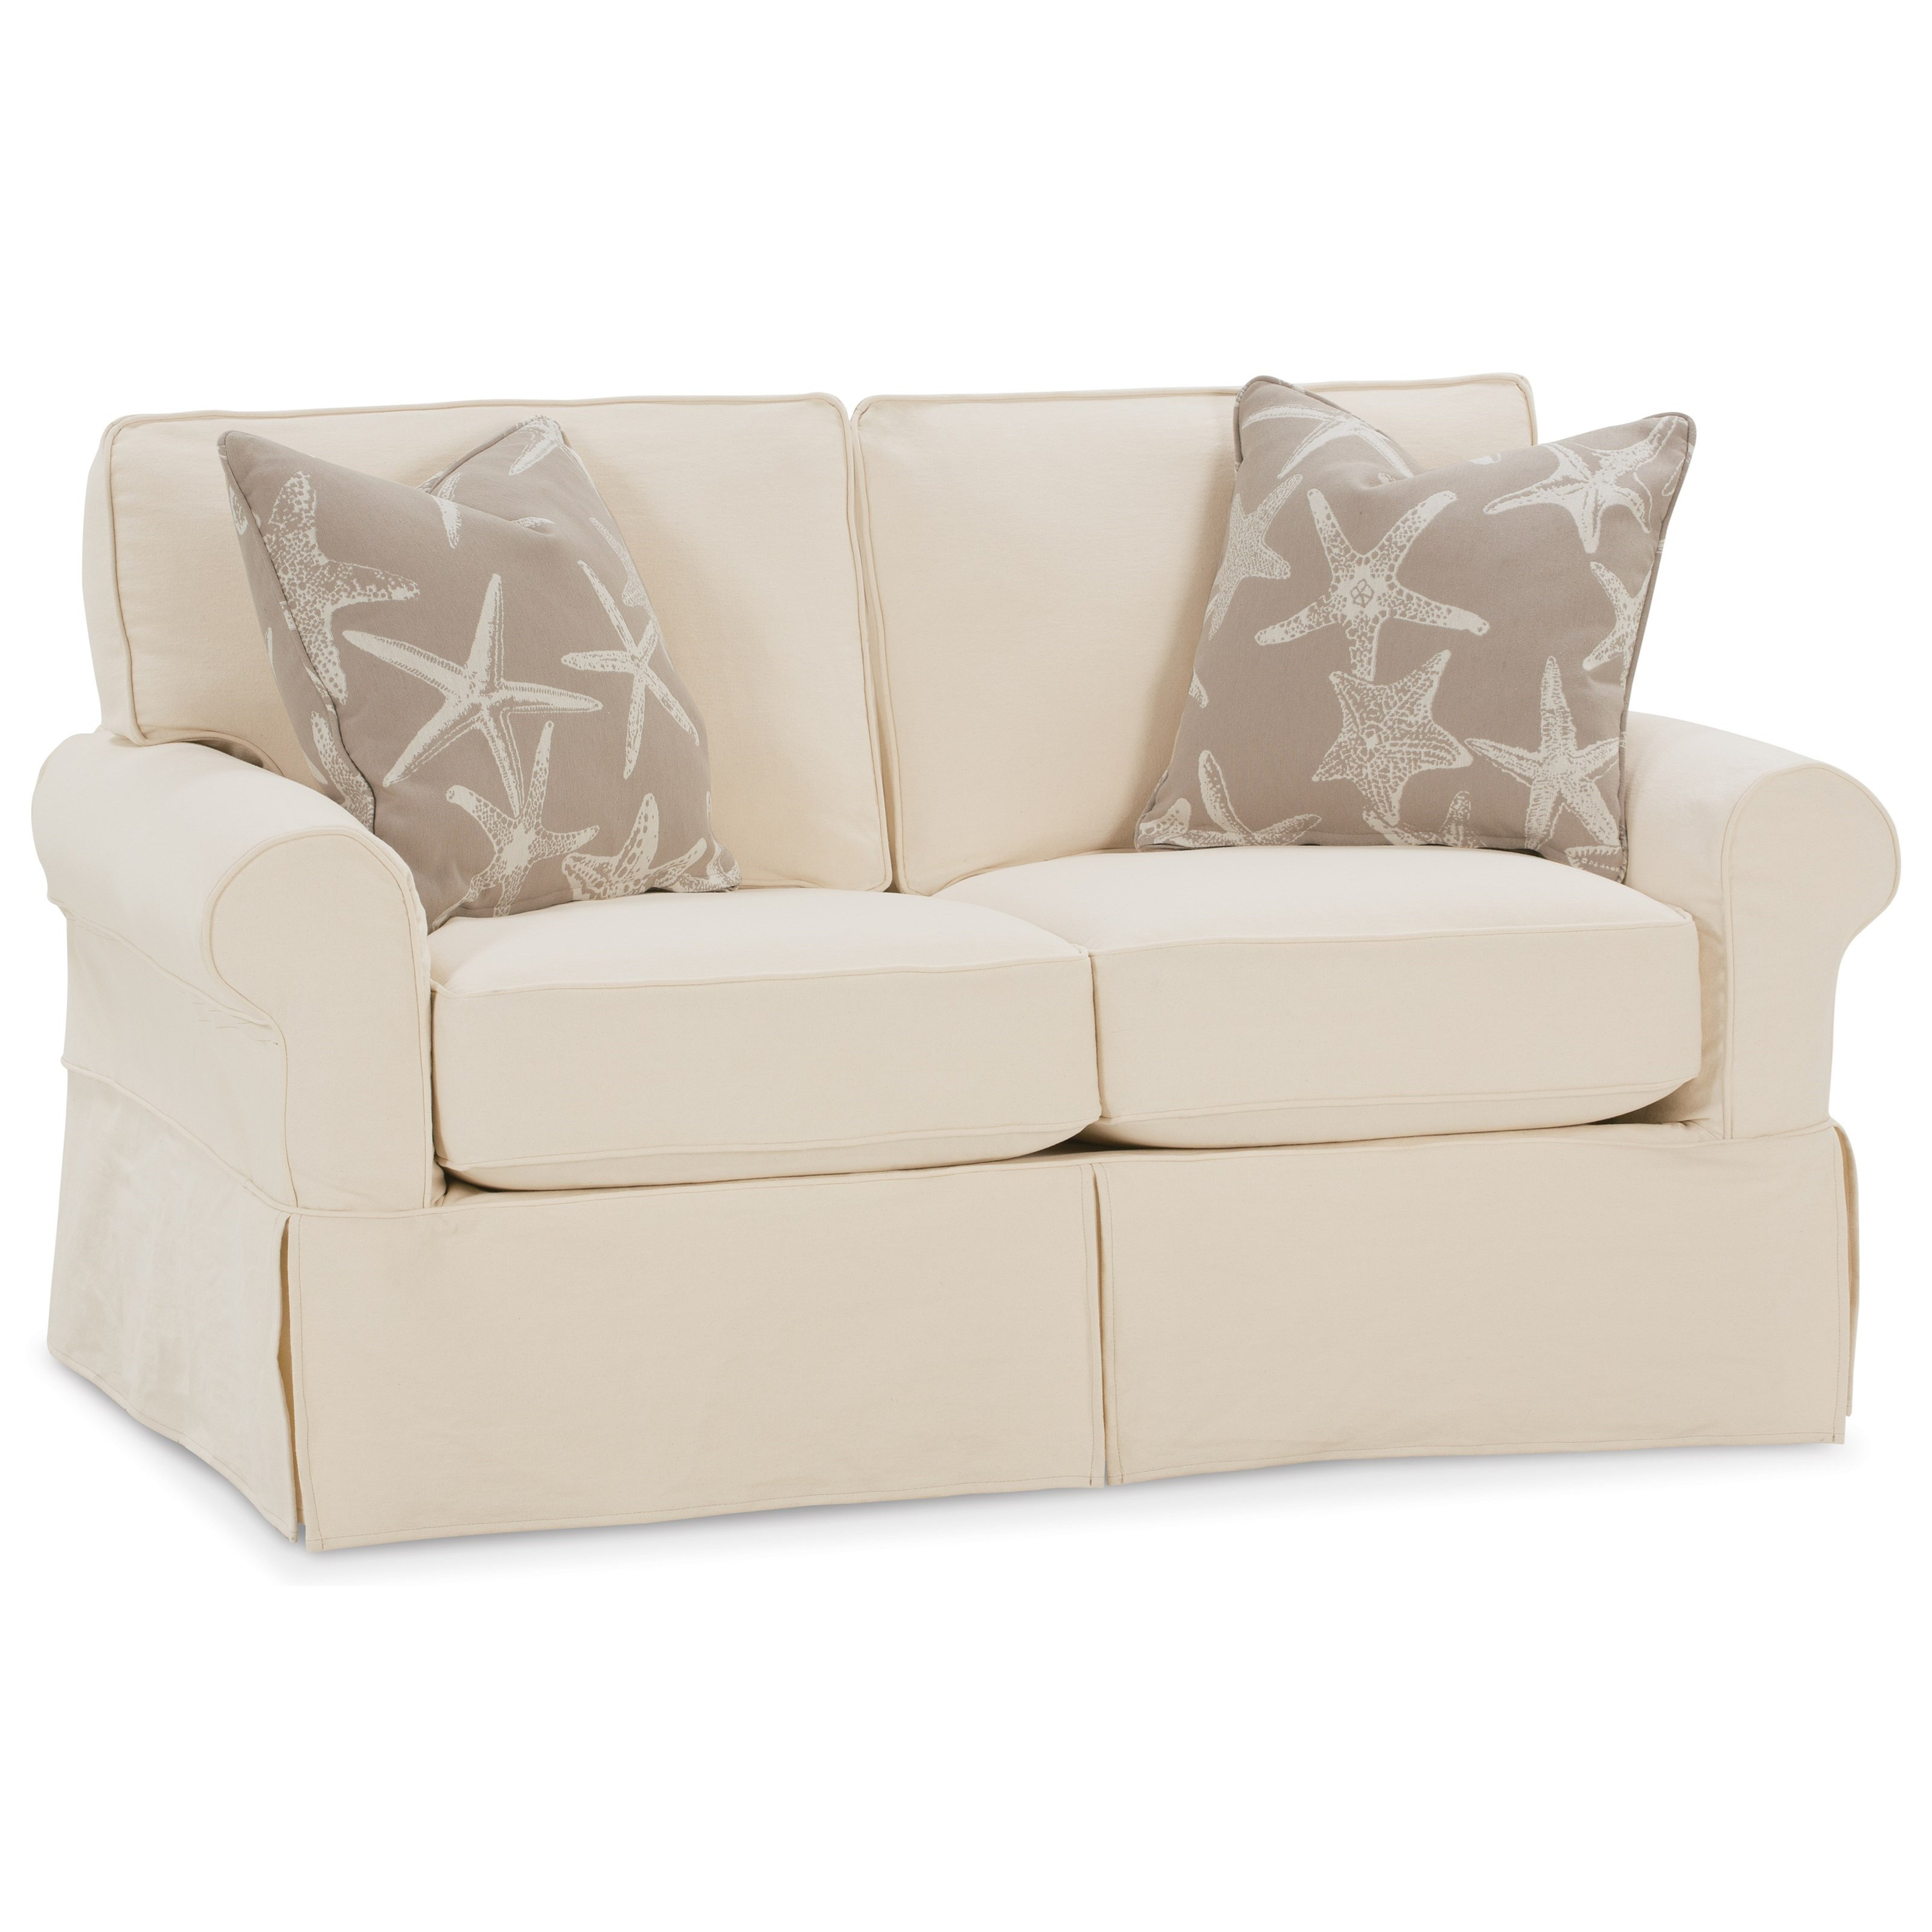 Rowe Nantucket A913 000 Transitional Loveseat Baer S